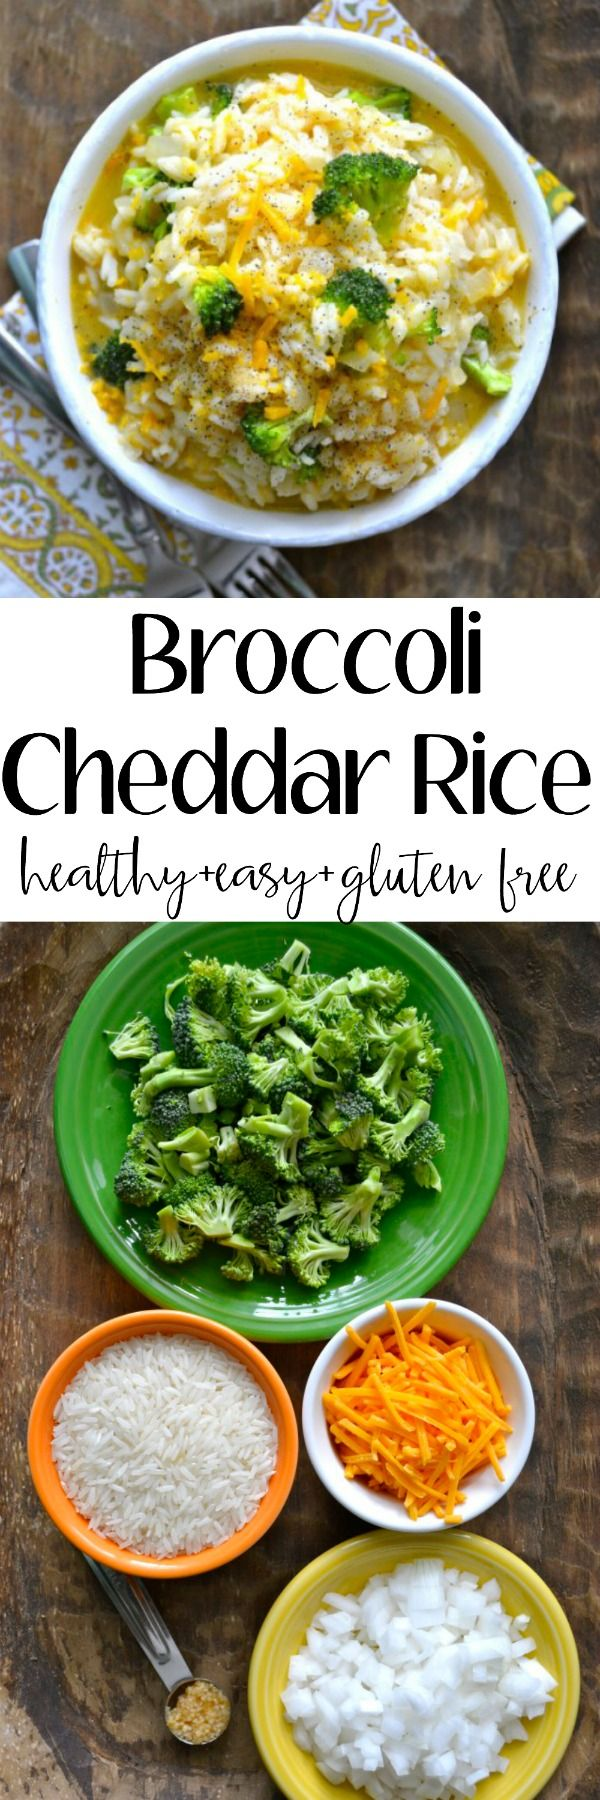 Creamy Broccoli Cheddar Rice!! This is the ultimate comfort food! Perfect as an easy side dish or a vegetarian meal! Loaded with sharp cheddar, tender rice and fresh broccoli! Gluten free!